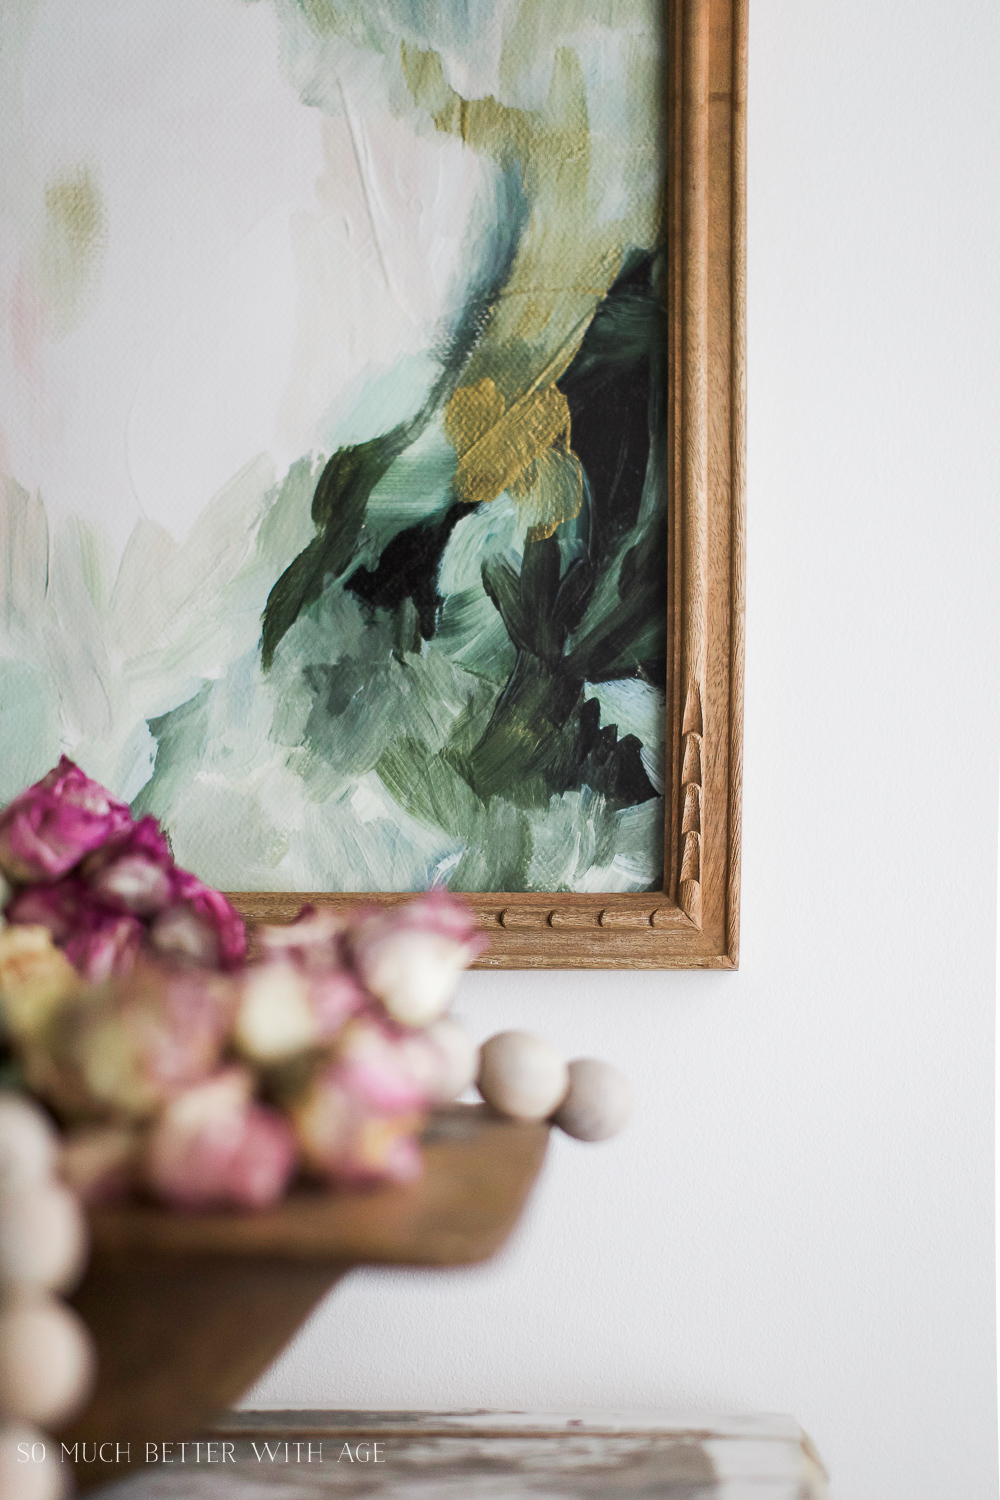 Vintage floral artwork, How to Pick Art with a French Vintage Vibe / picture frame - So Much Better With Age